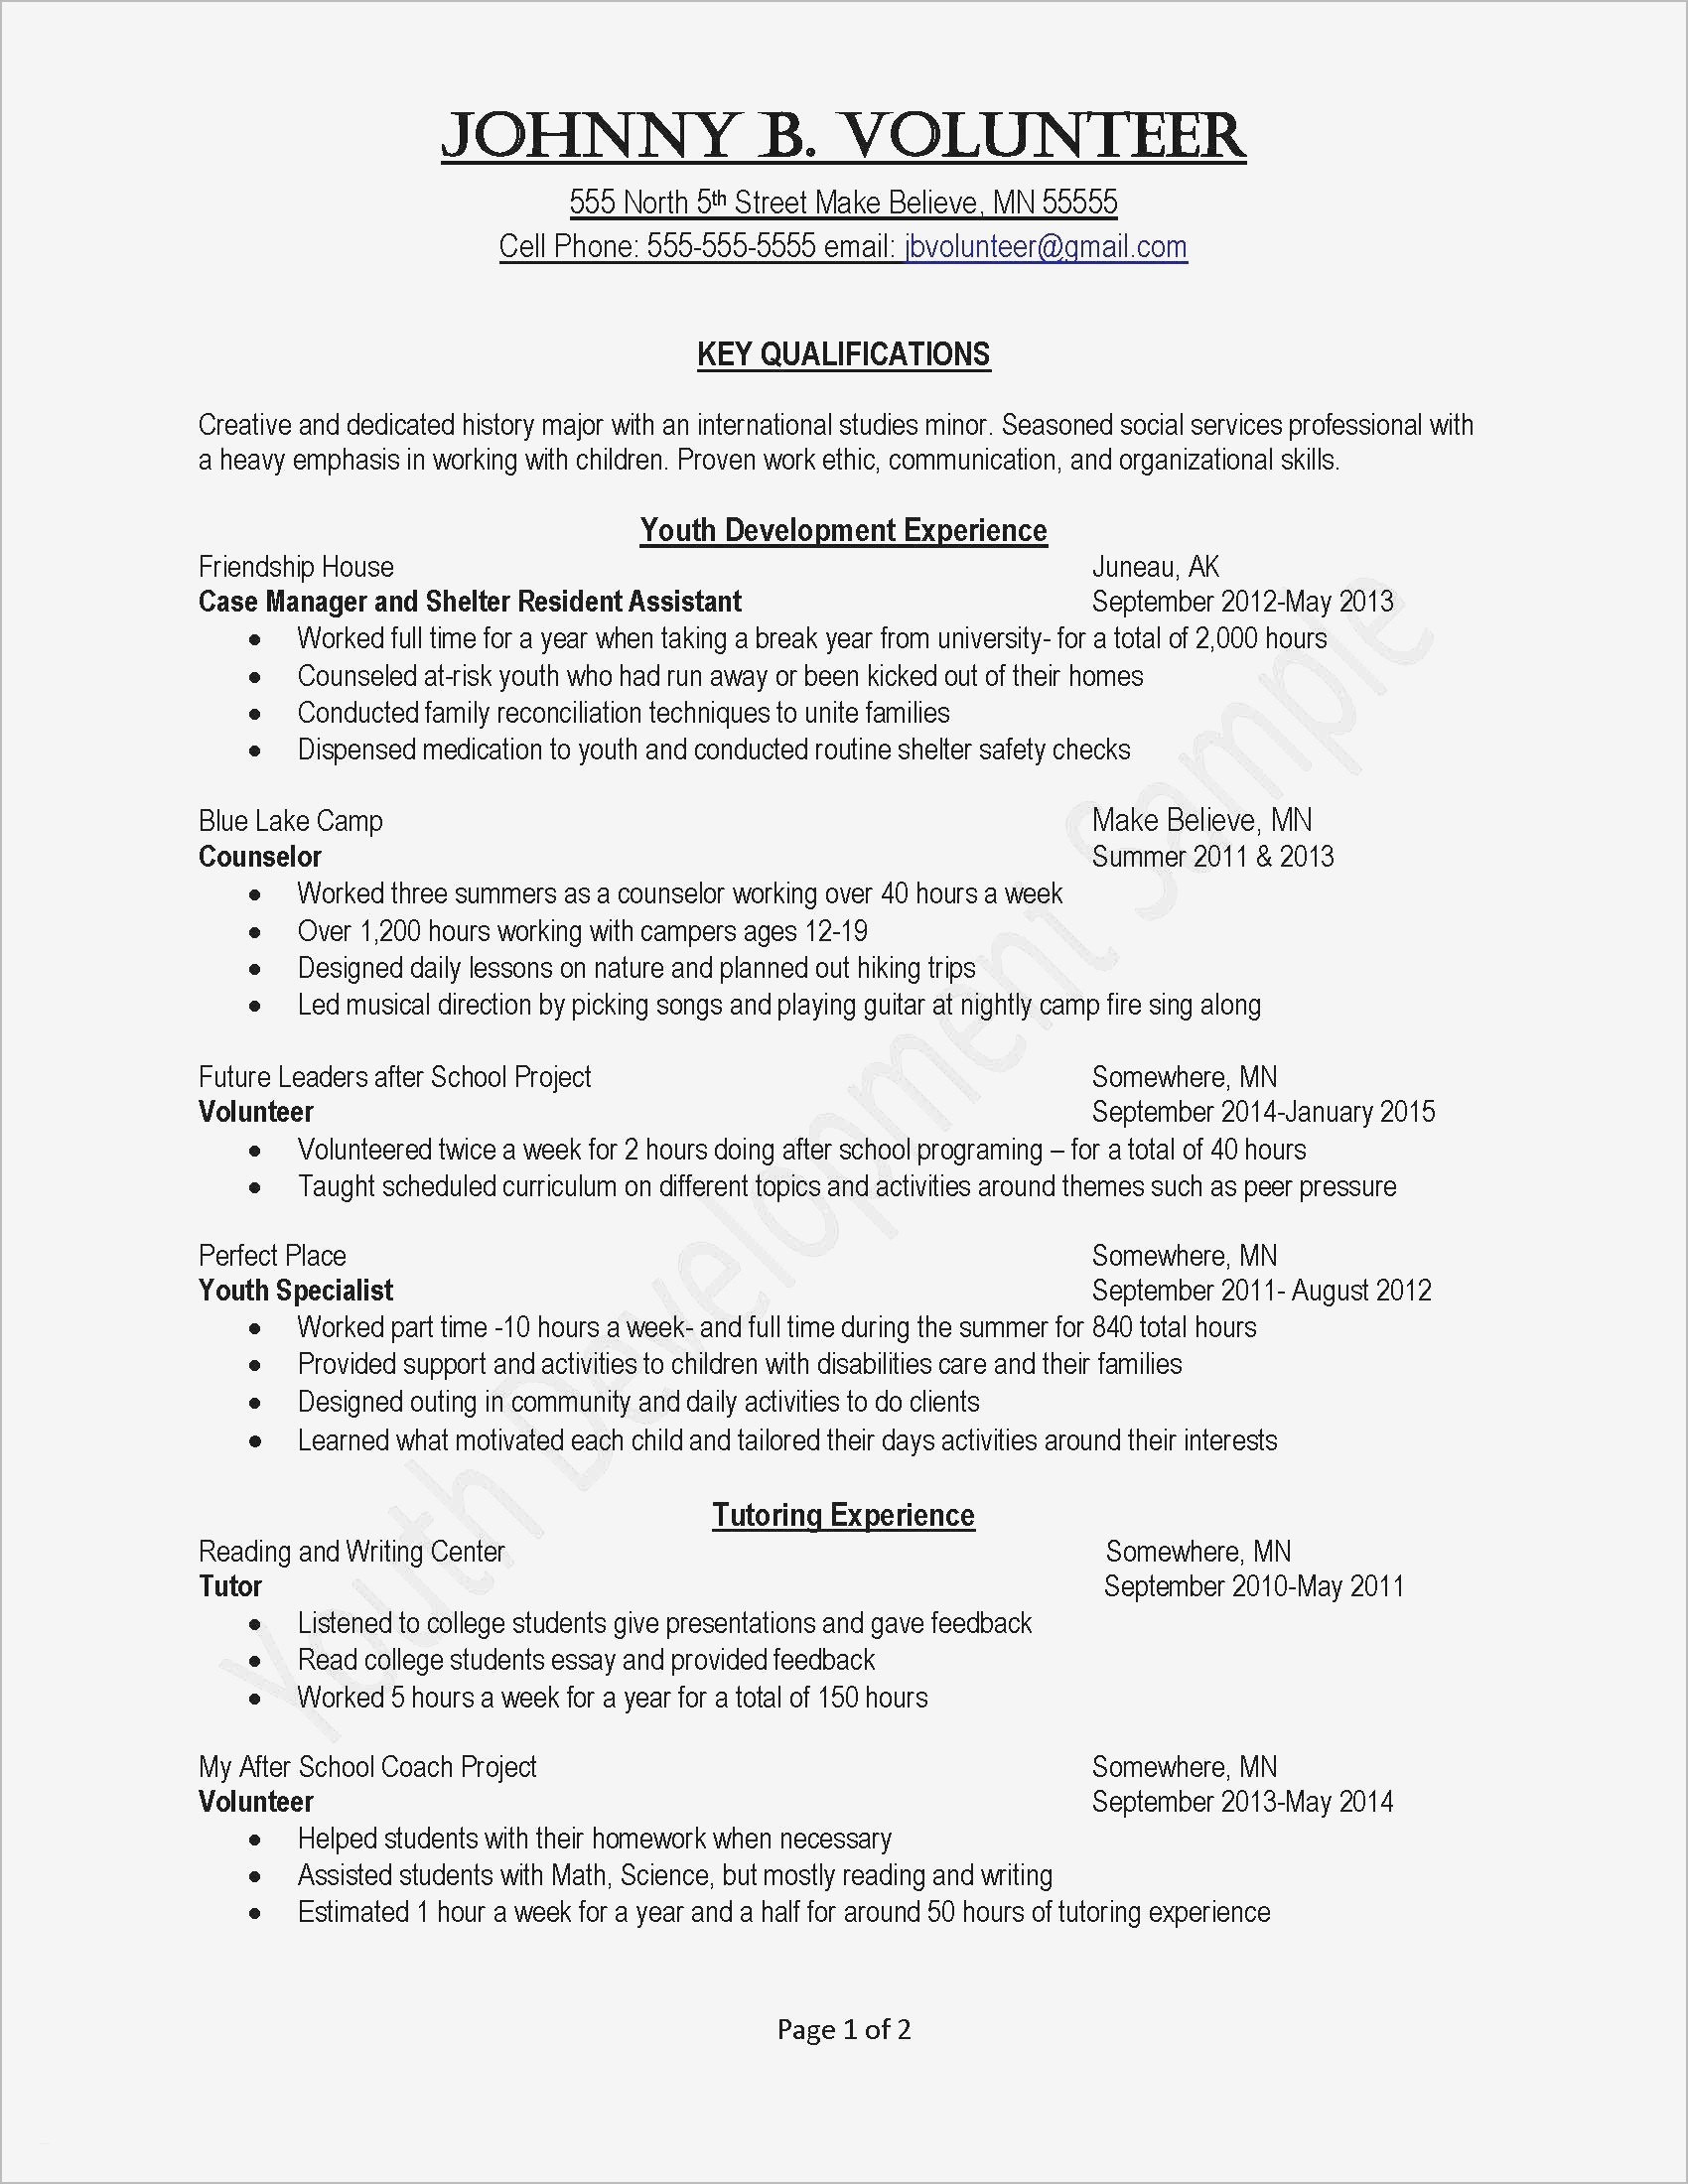 Easy Cover Letter Template Free - Free Templates for Resumes and Cover Letters Best Job Fer Letter